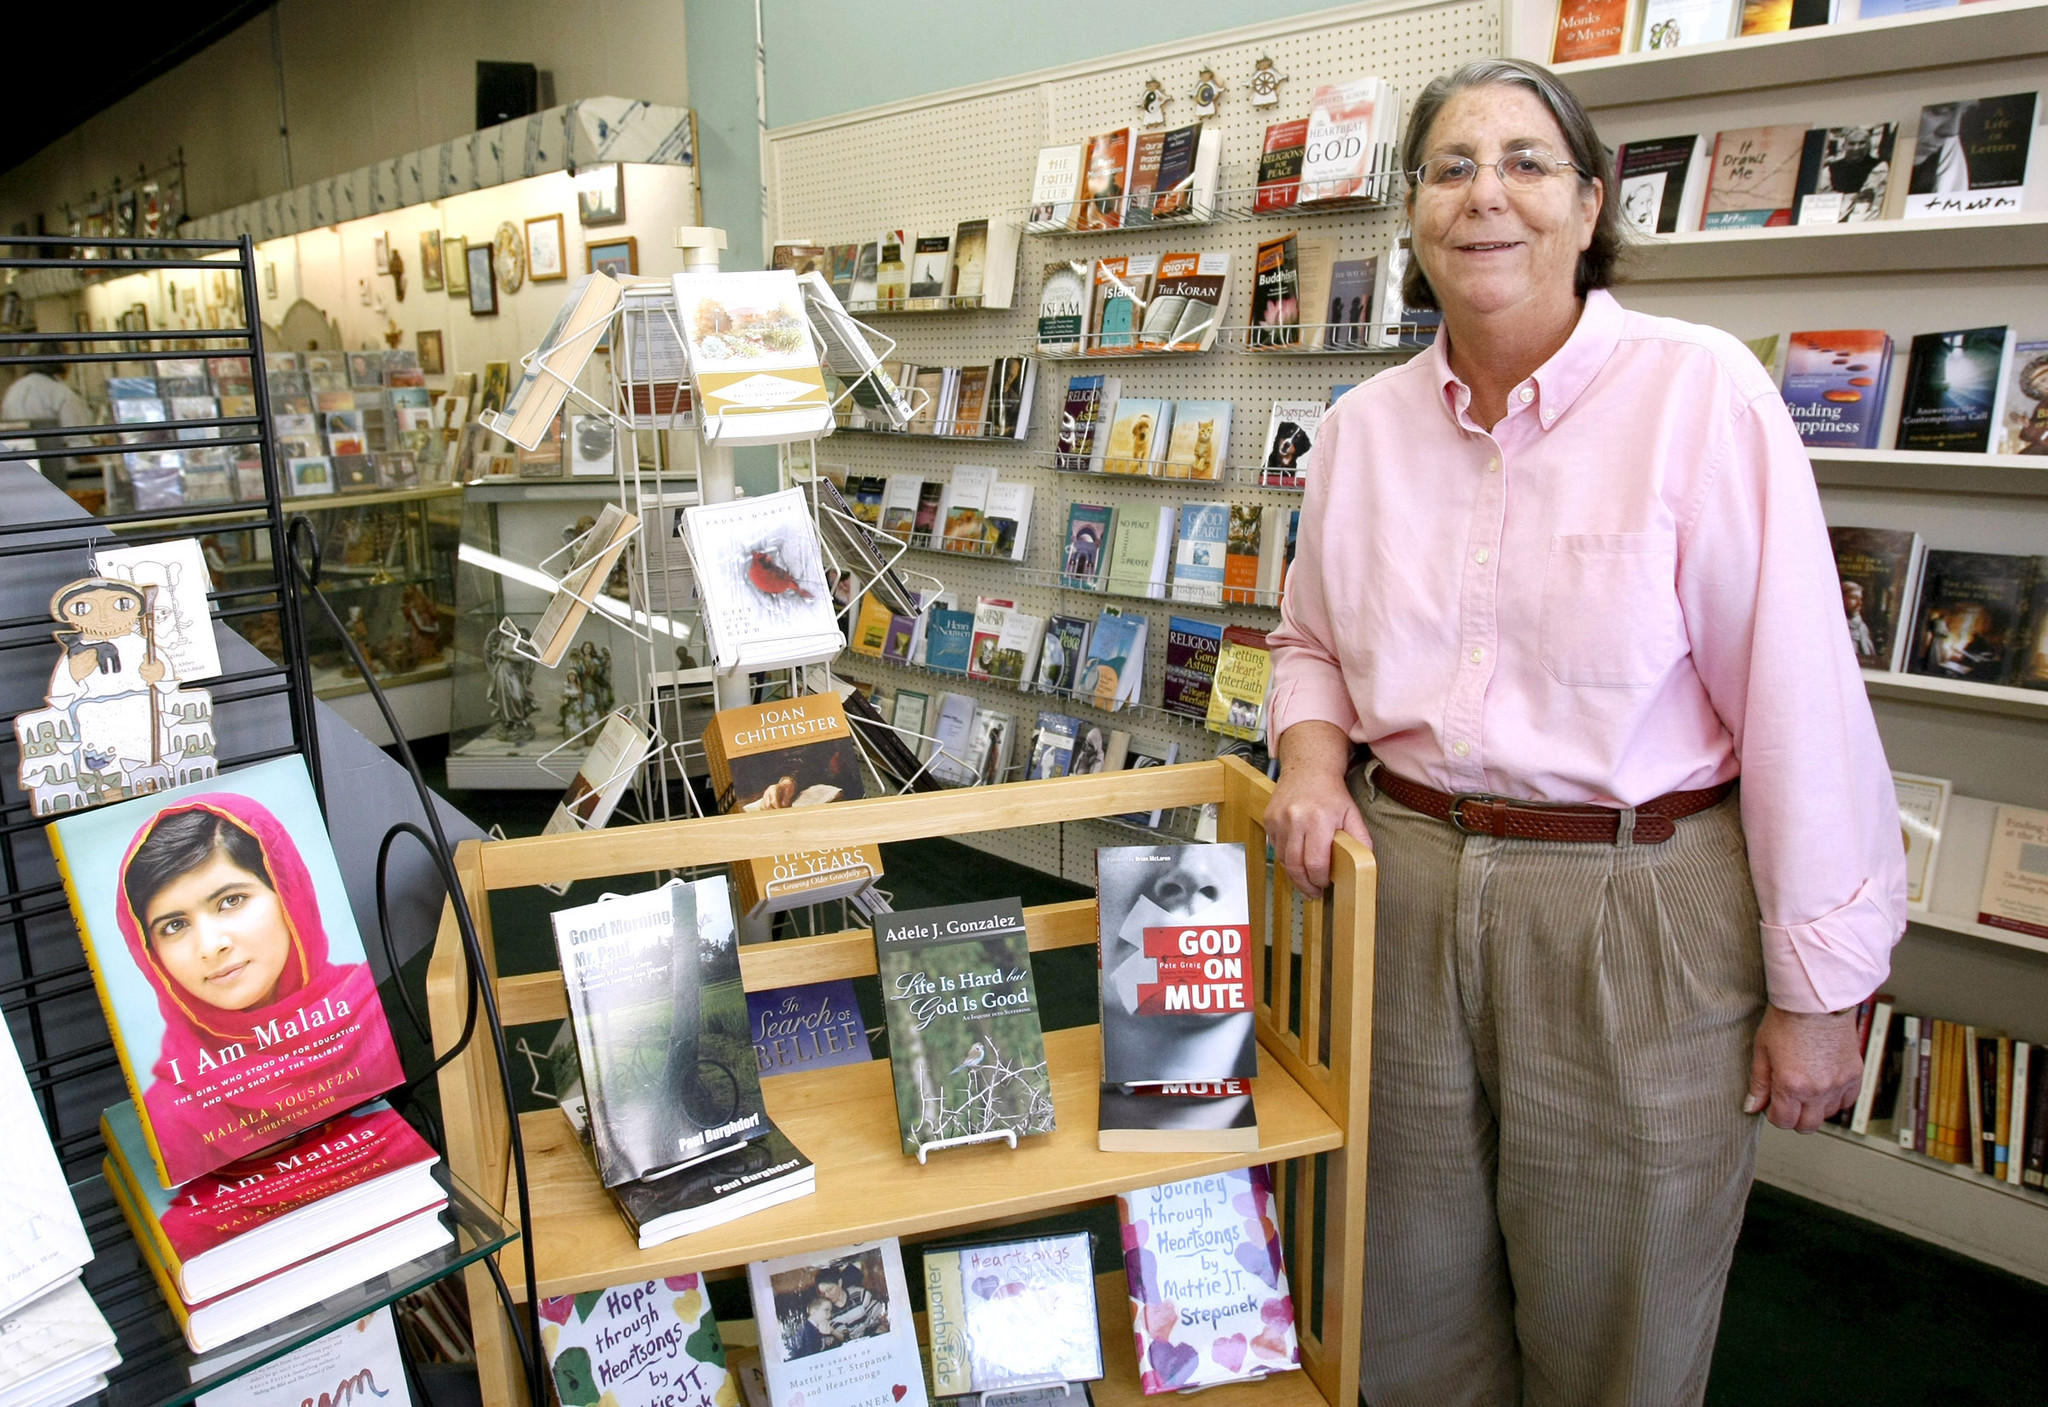 Christine Stafford, owner of the Flowering Tree, at her books and gift store on the 2200 block of Honolulu Ave. in Montrose on Wednesday, March 19, 2014. After more than 20 years in business, Stafford will close the store if she can't find a buyer for the business soon. (